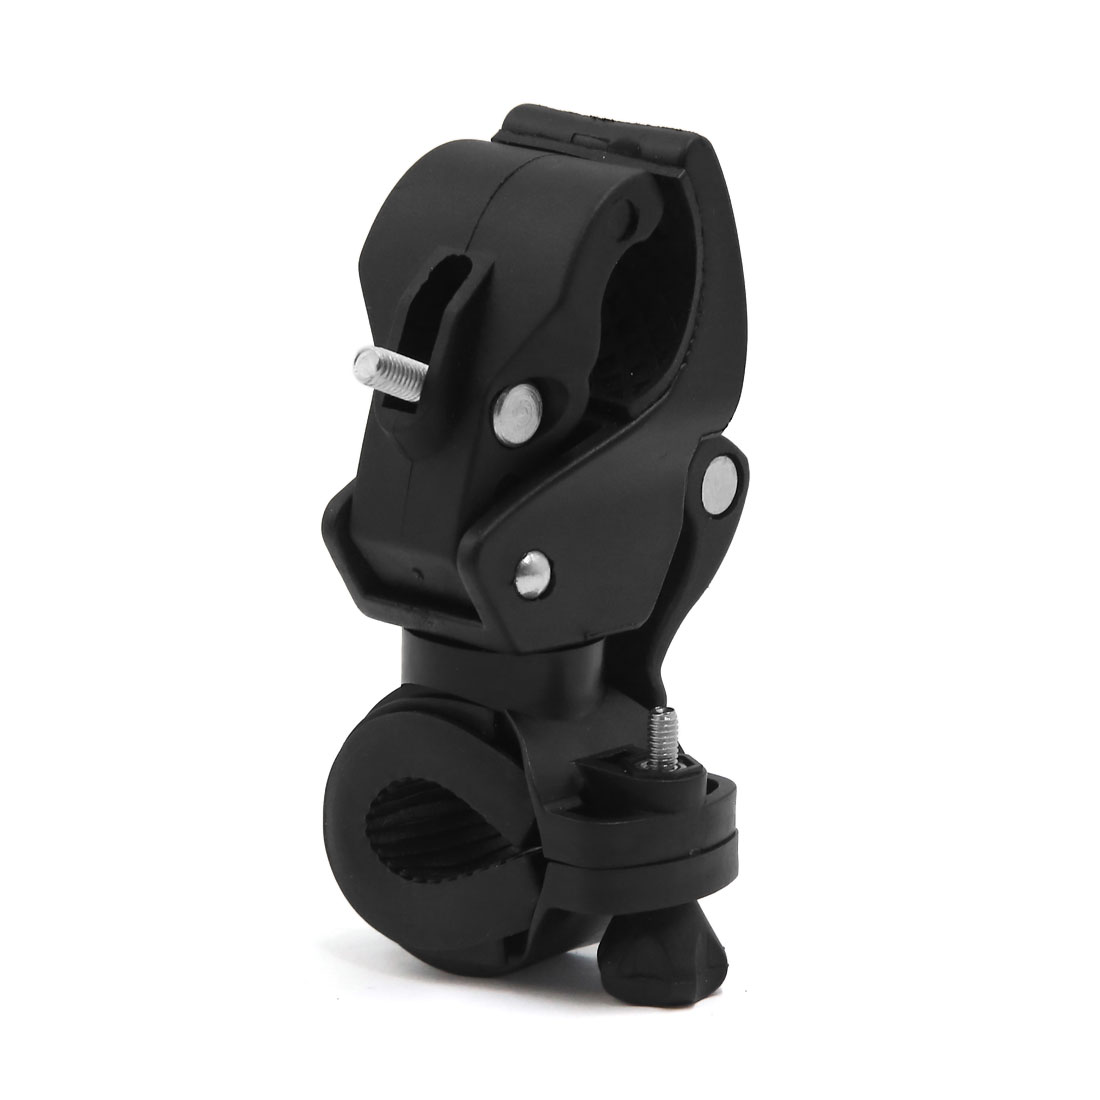 Black Universal Plastic Rubber Front Light Lamp Holder Bracket for Bike Bicycle